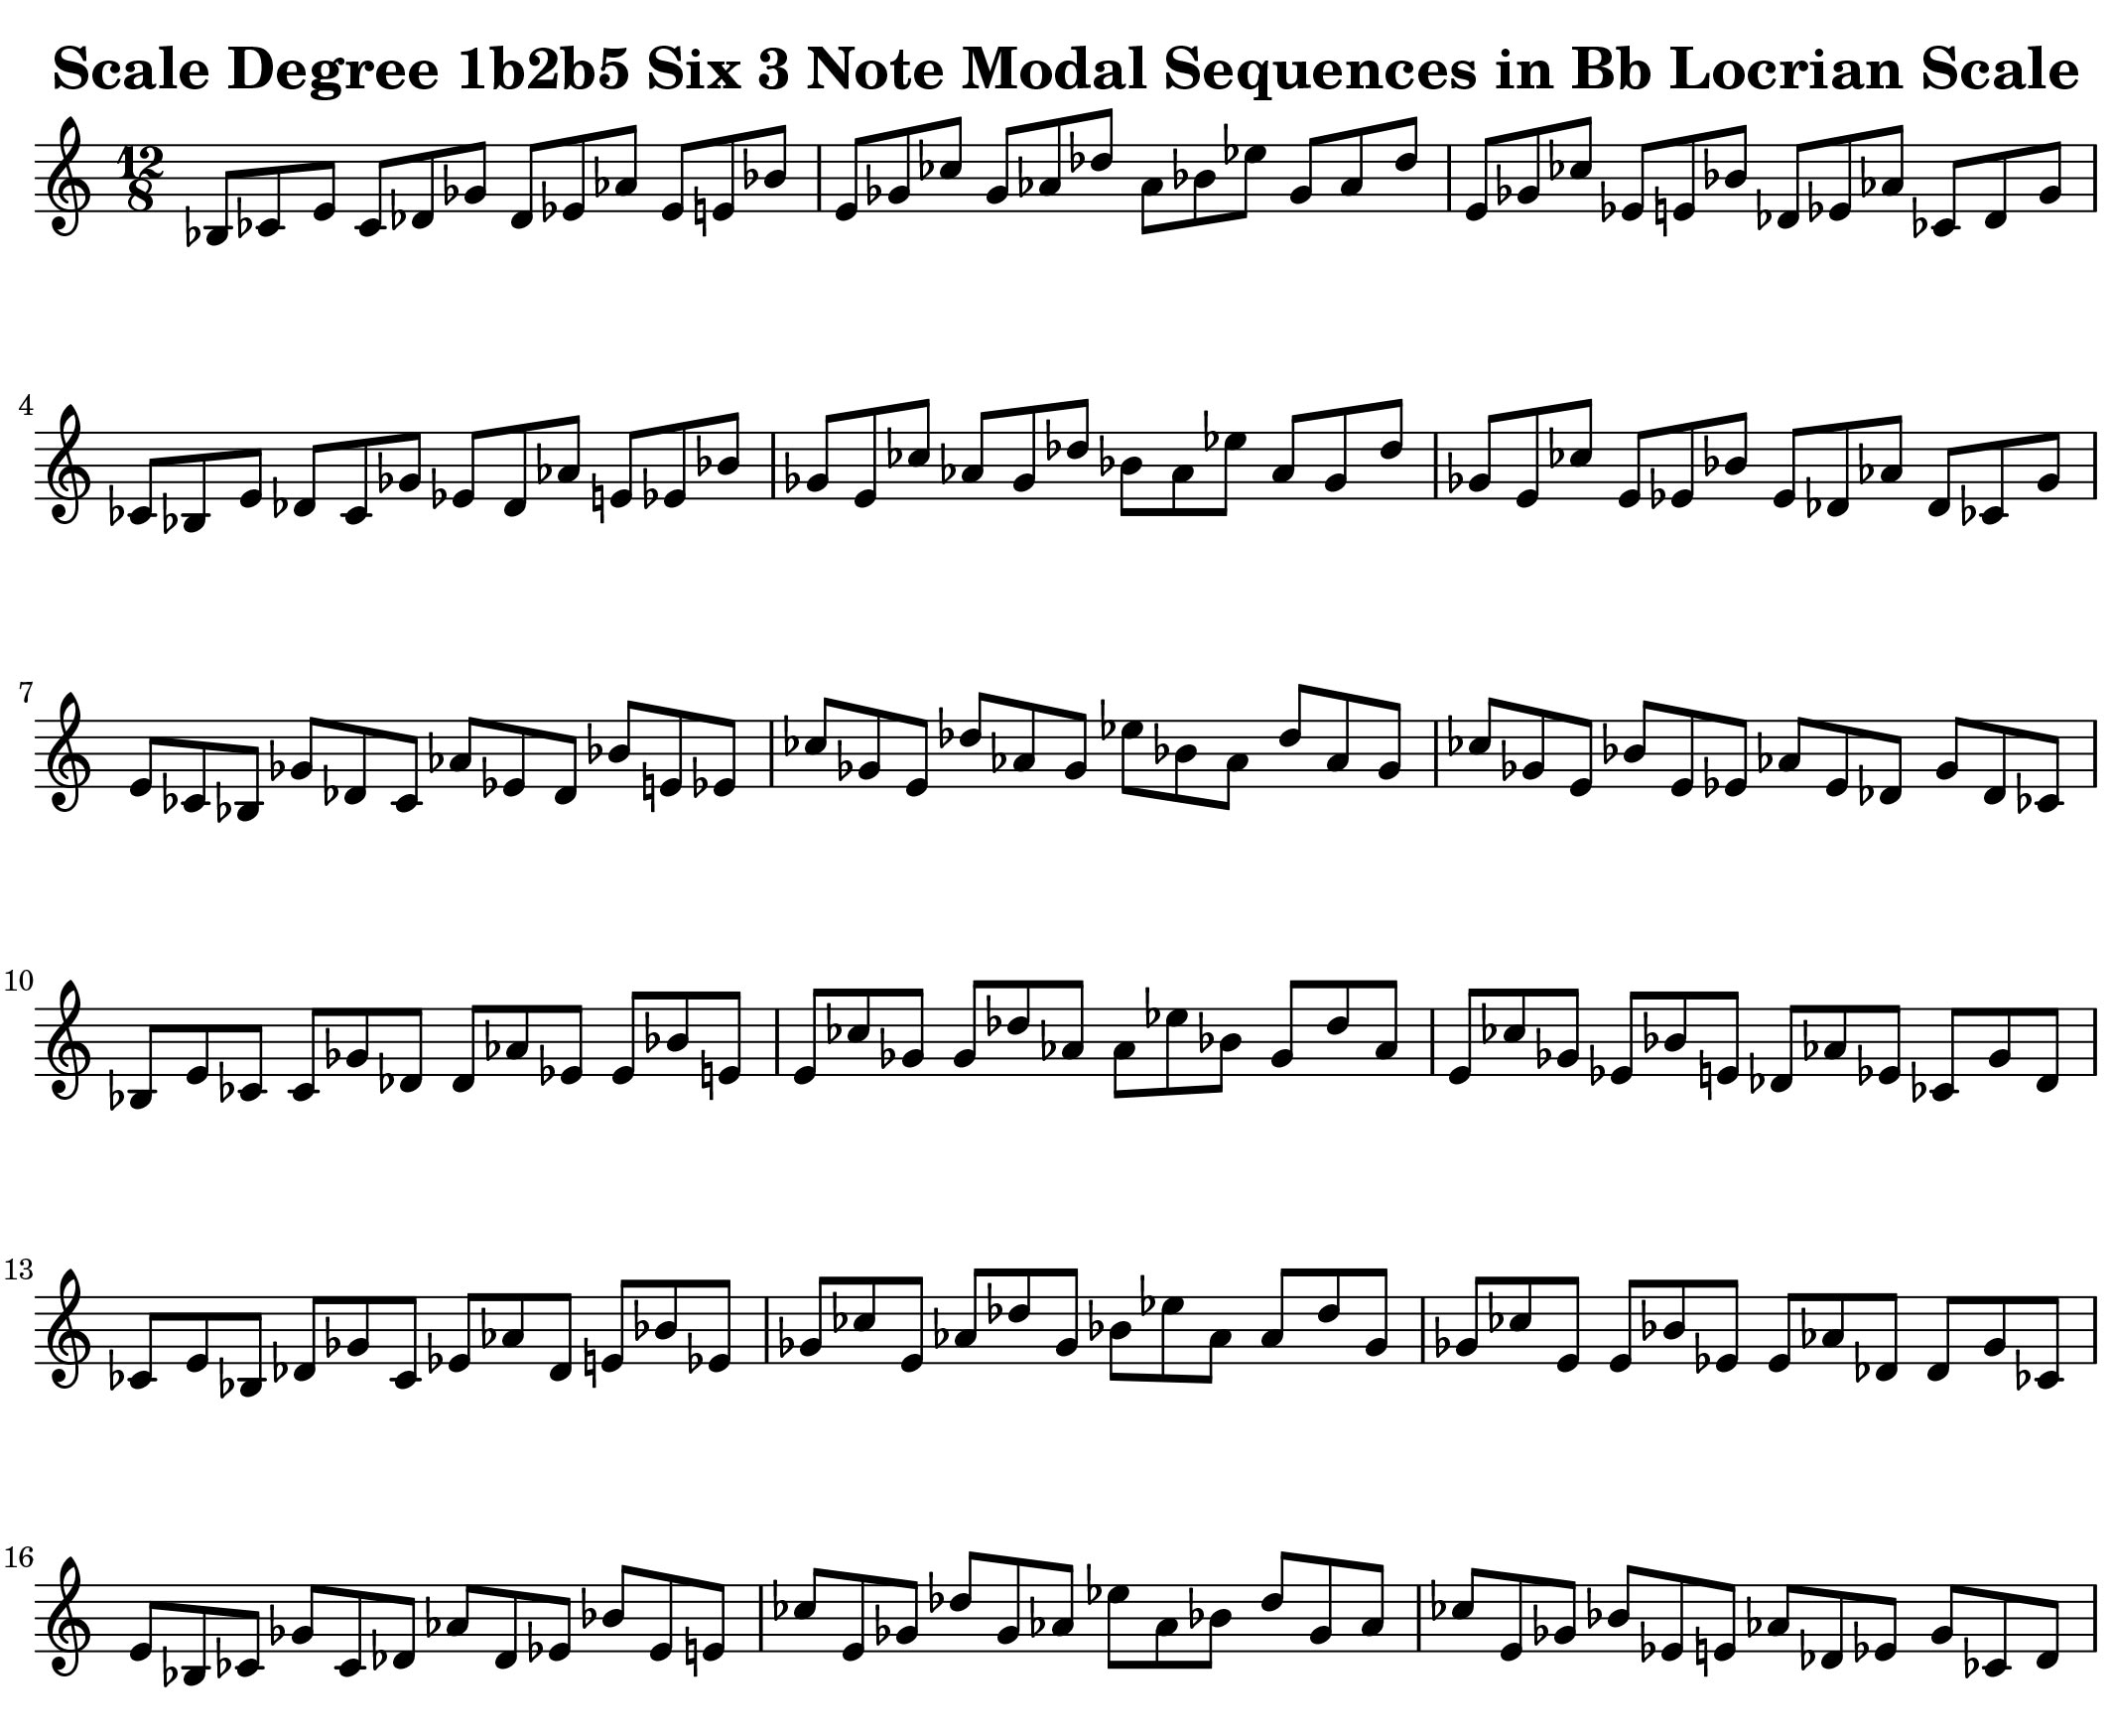 Bb Locrian 3 Note Modal Sequences by Bruce Arnold for Muse Eek Publishing